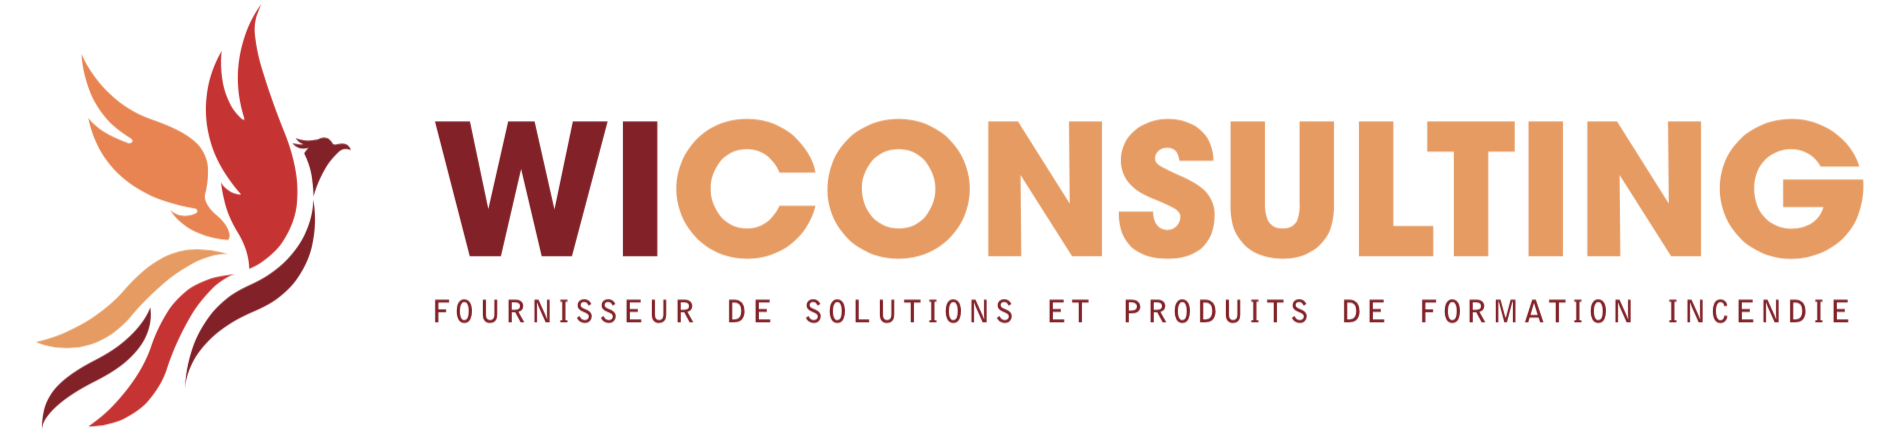 logo-wiconsulting